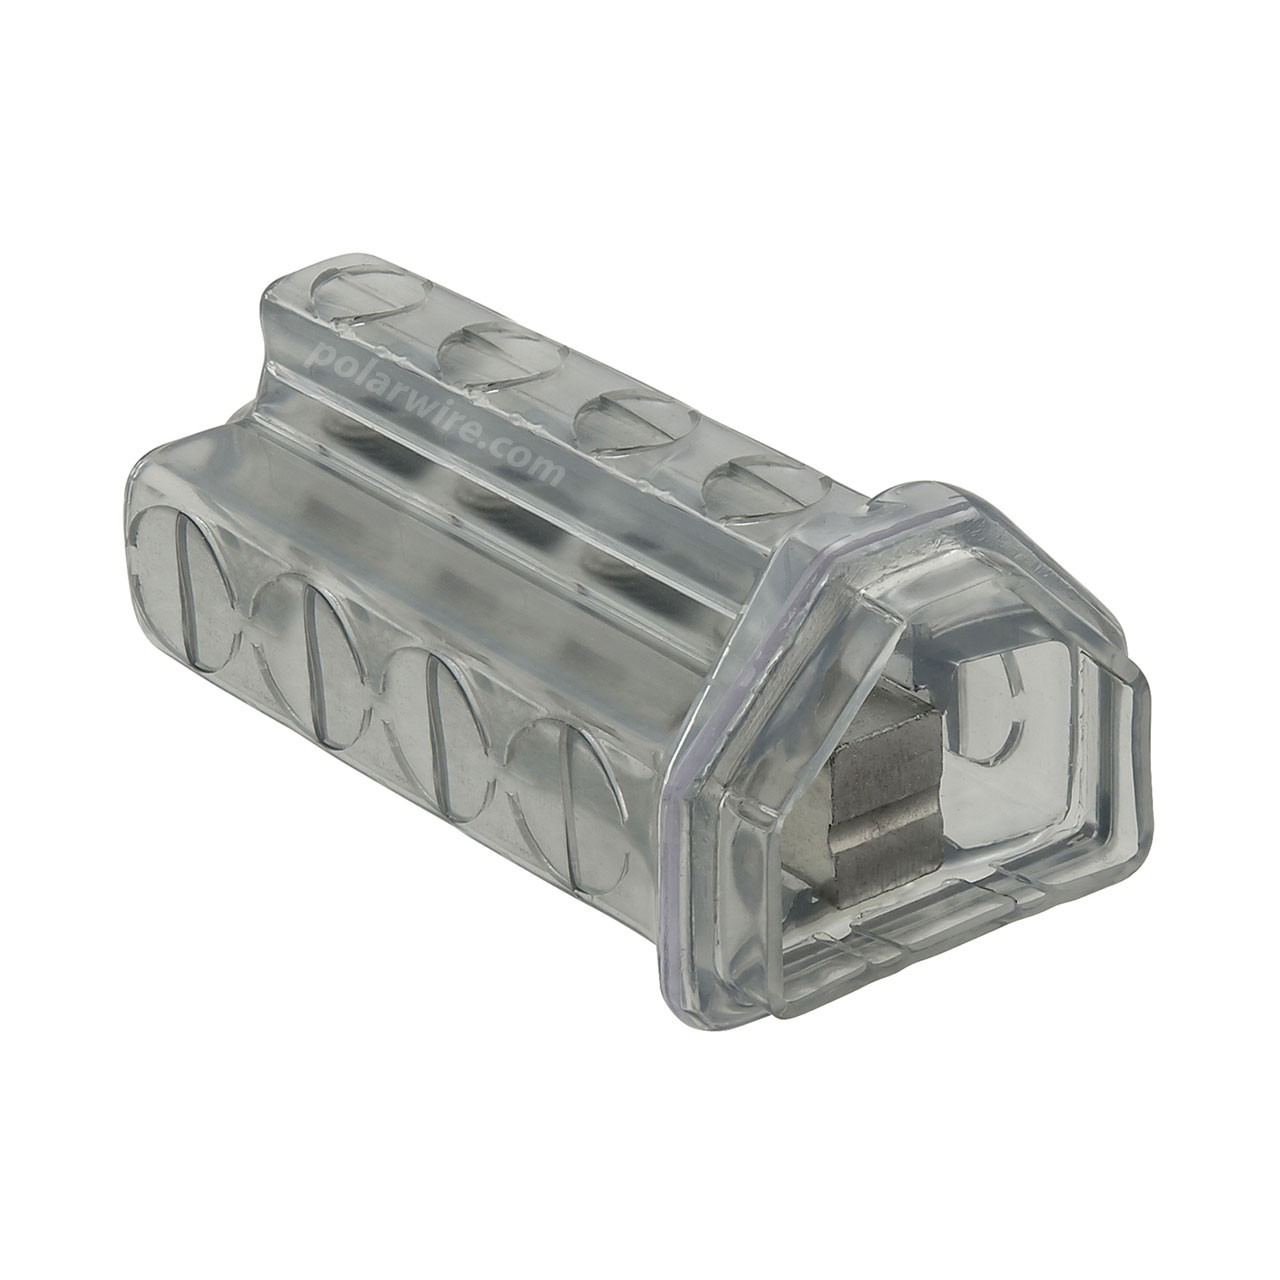 CLEAR TAP 4 HOLE 14GA-2/0 - Polar Wire Products